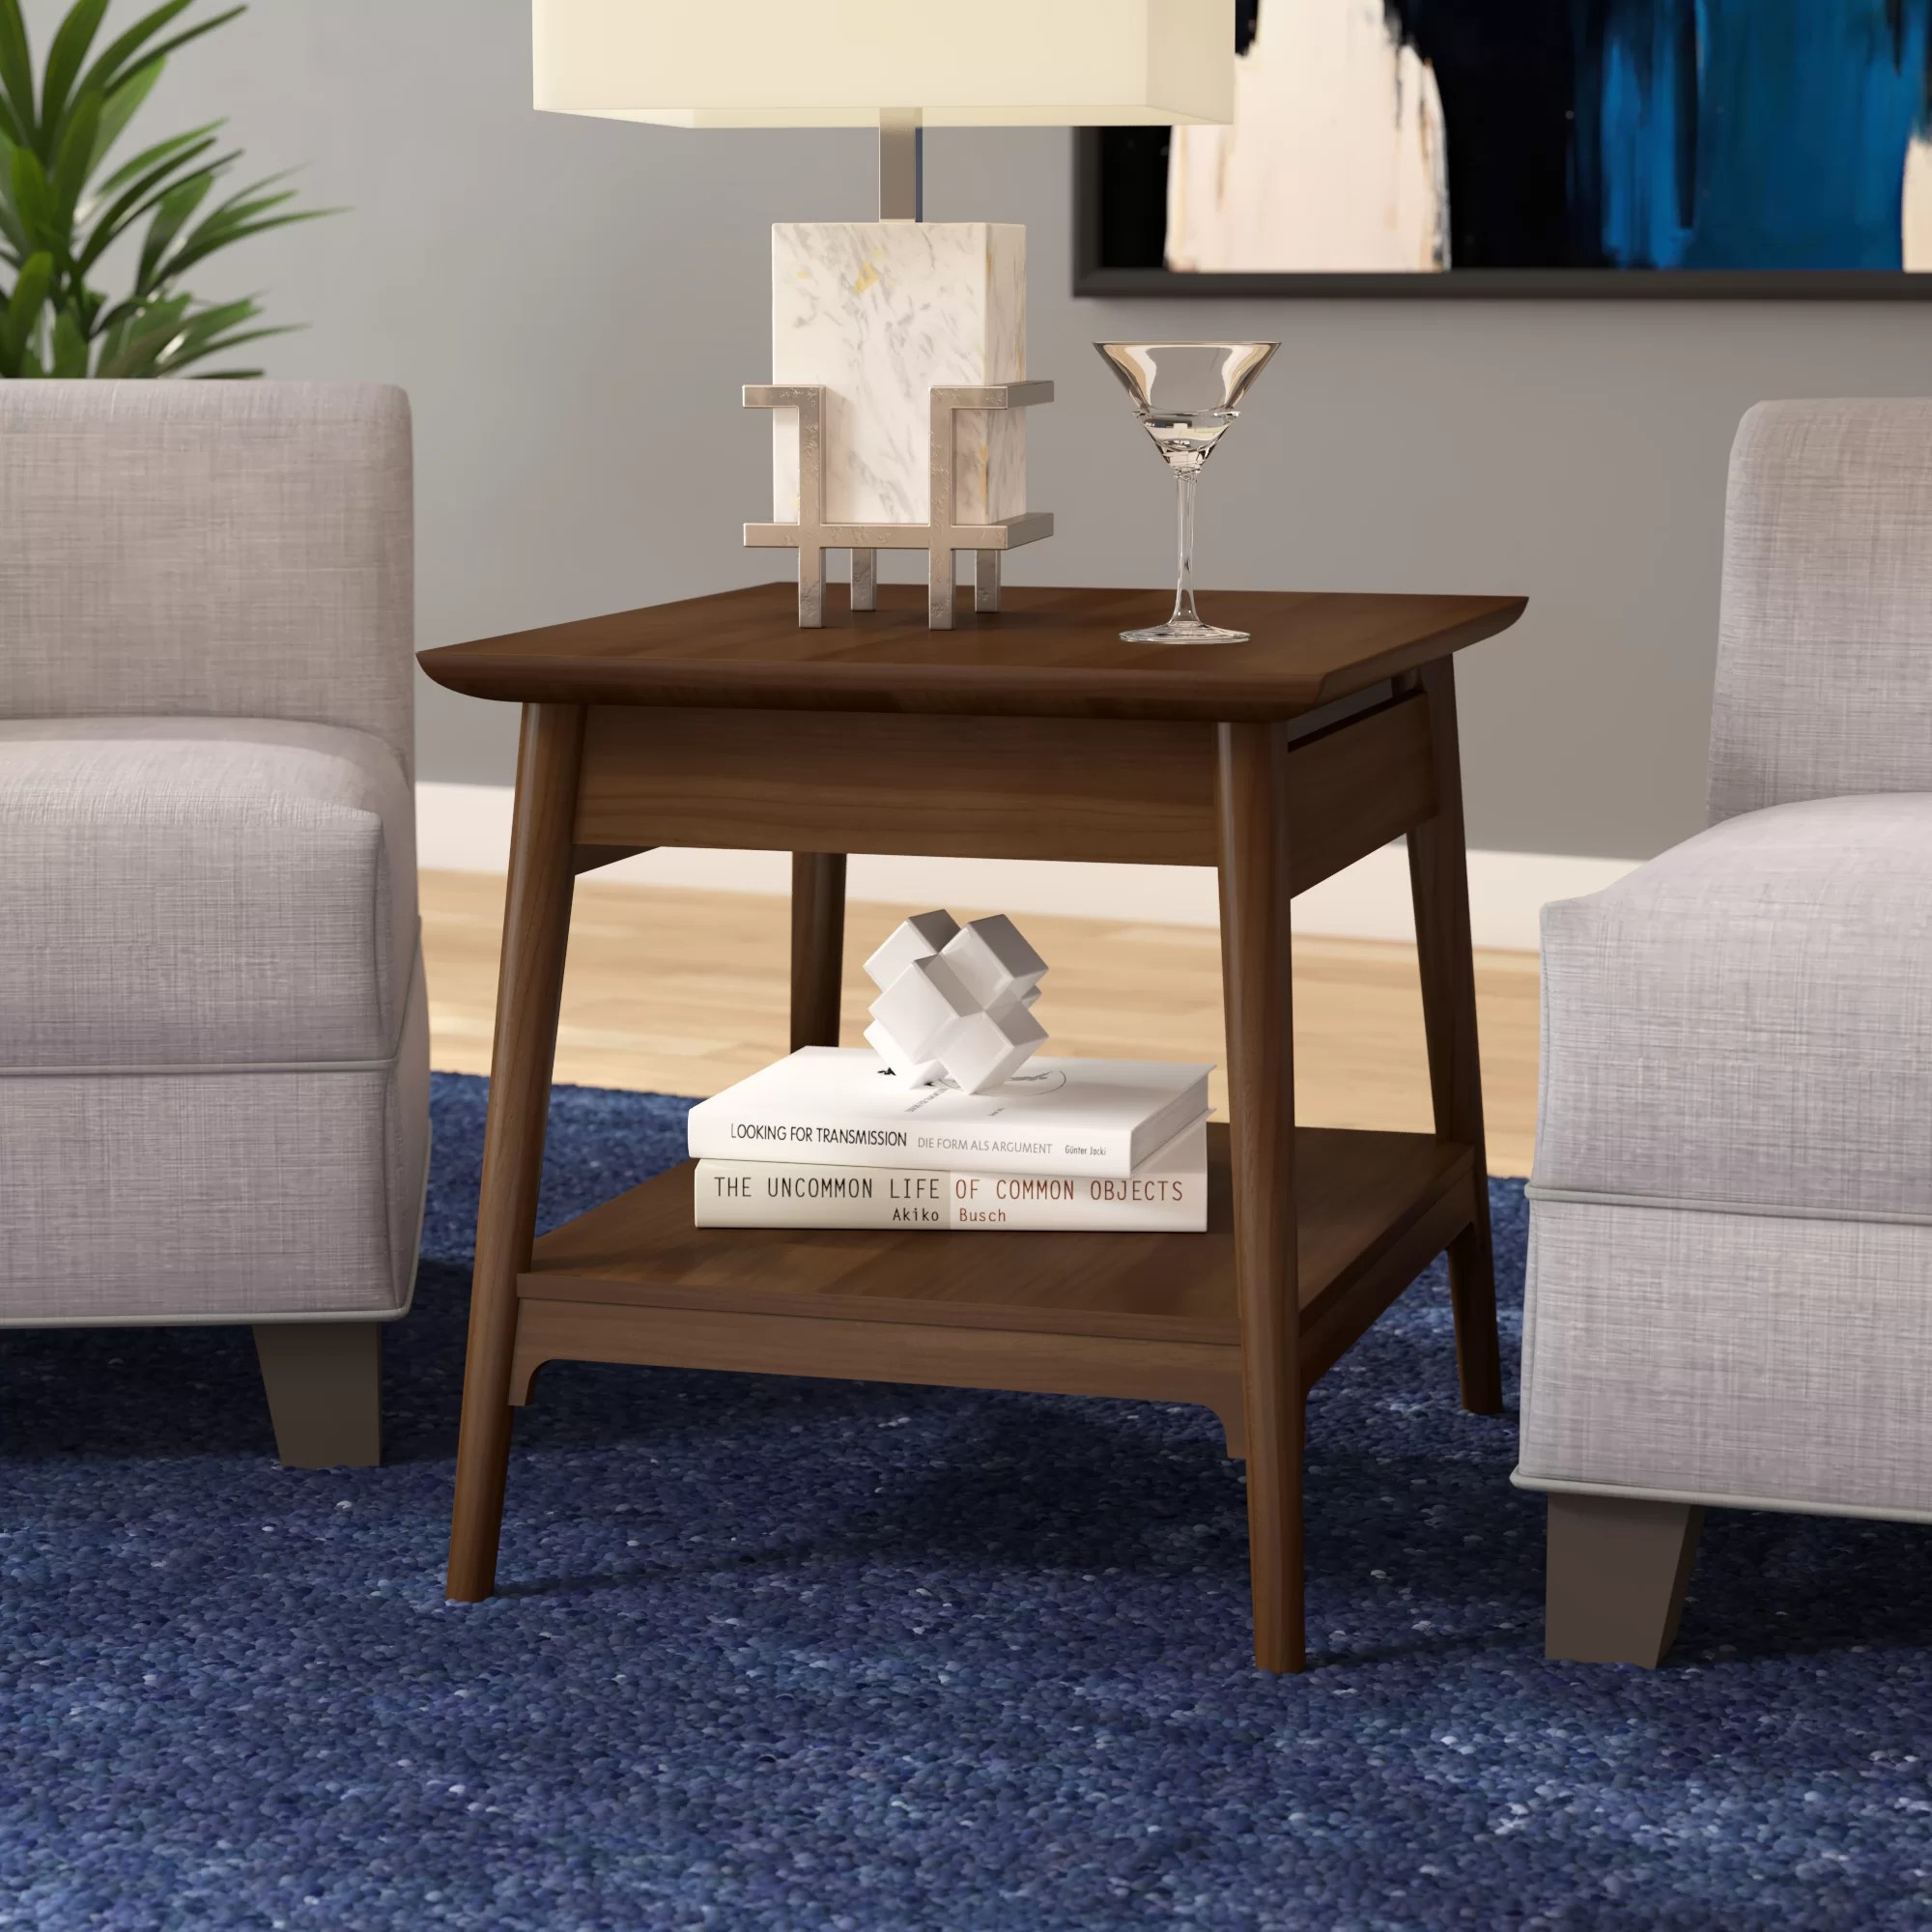 al s chairs and tables kd smart chair owner manual corrigan studio kody end table reviews wayfair